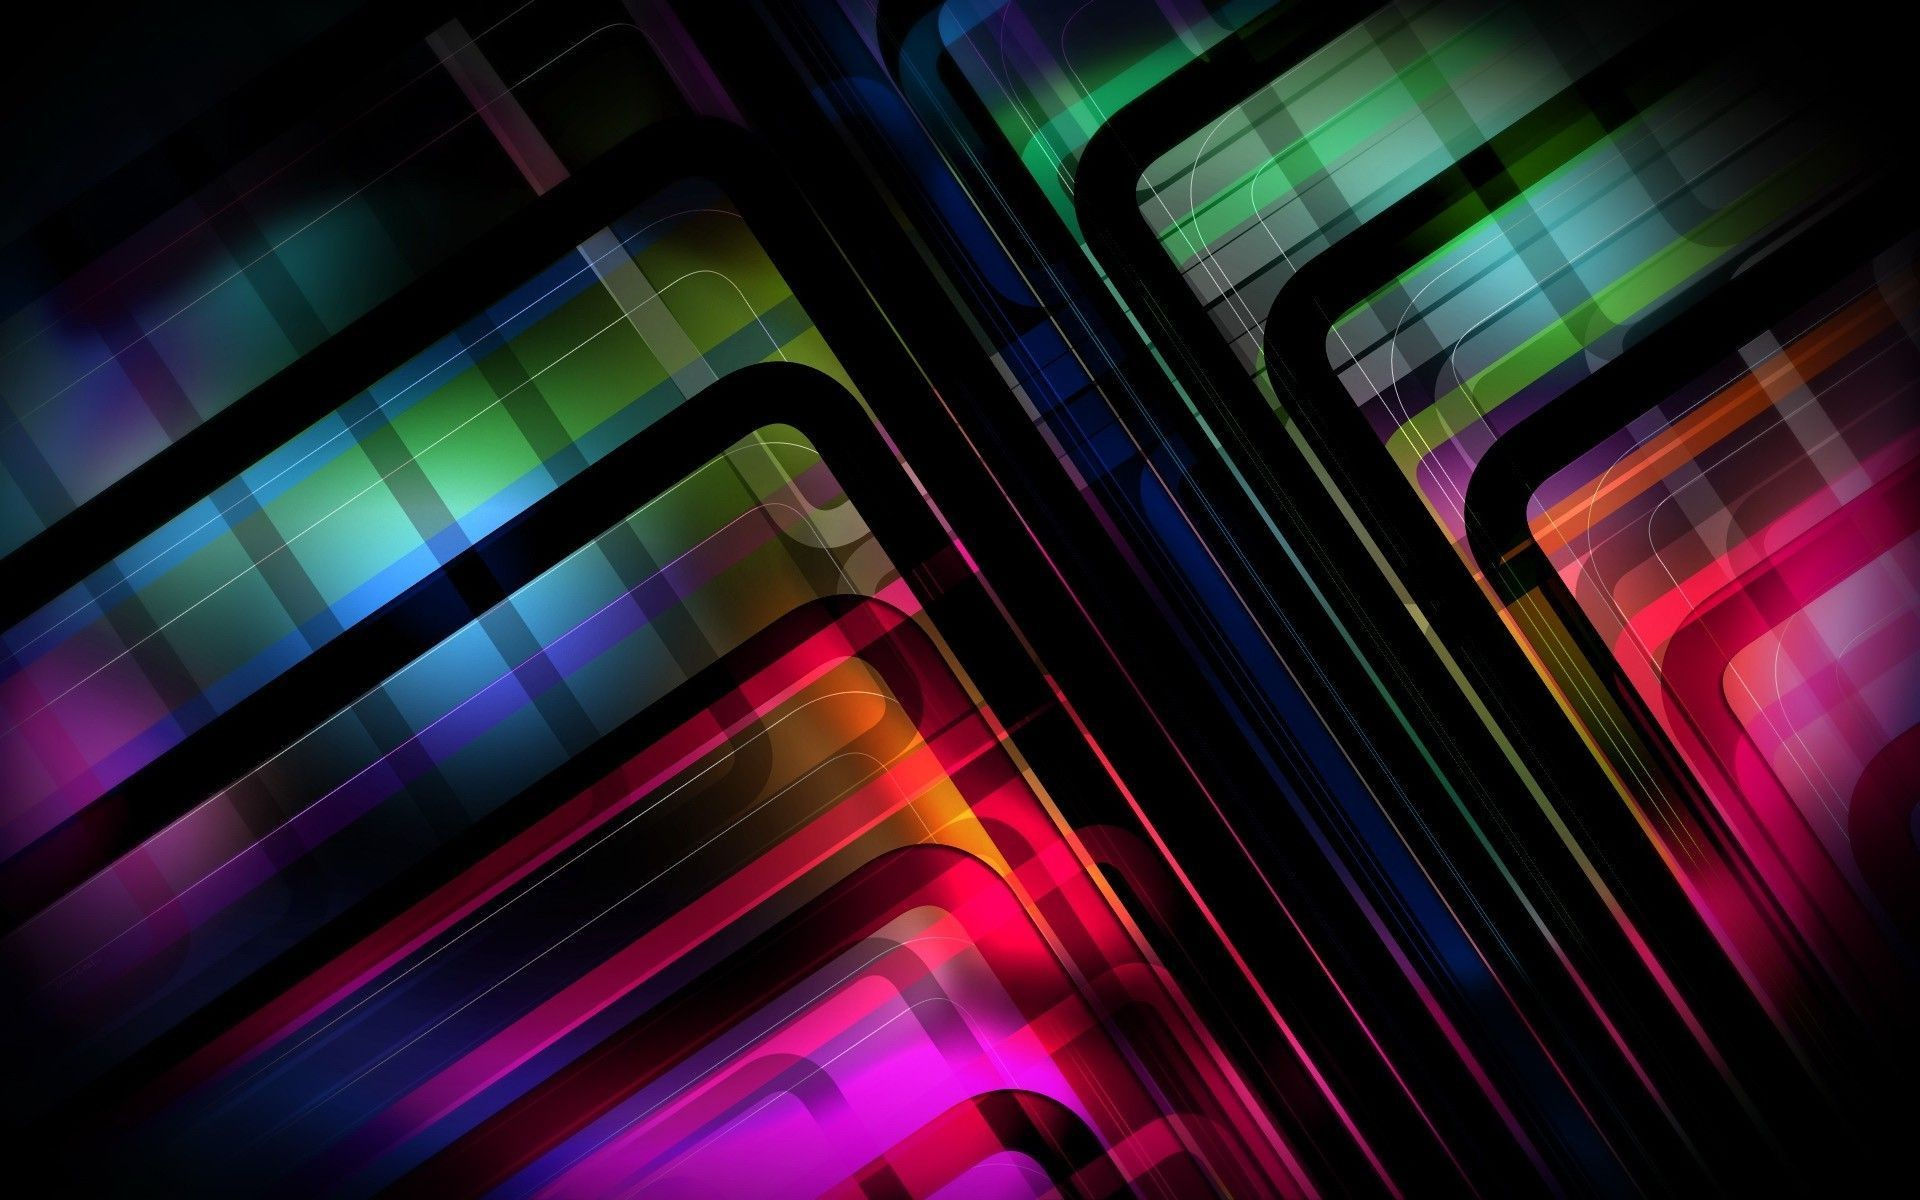 1920x1200 Cool Neon Wallpapers: Neon Lights Wallpapers Full Hd Wallpaper Search  px